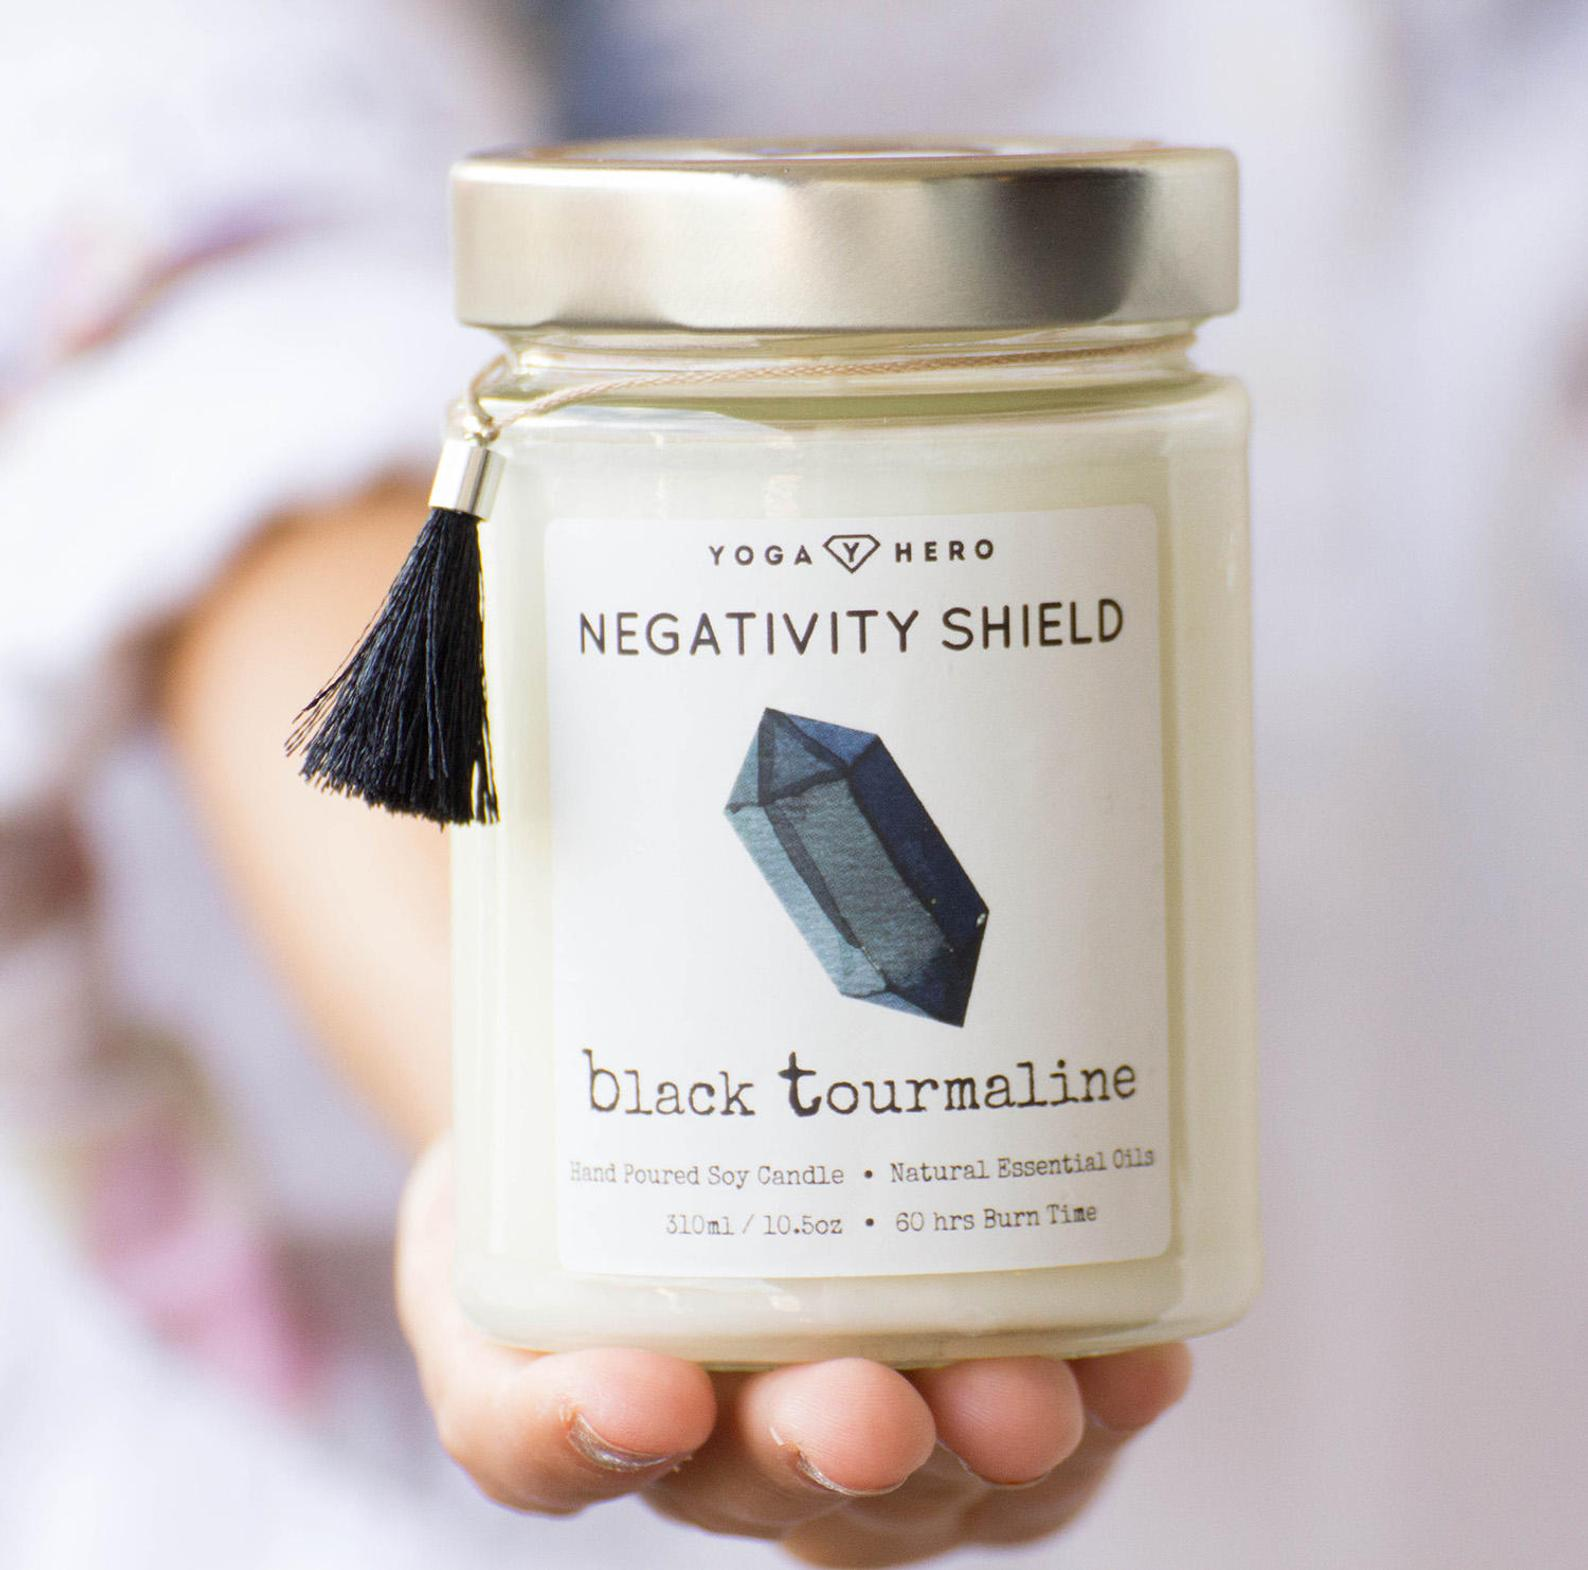 Black Tourmaline Negativity Shield Crystal Candle By Yoga Hero on Etsy